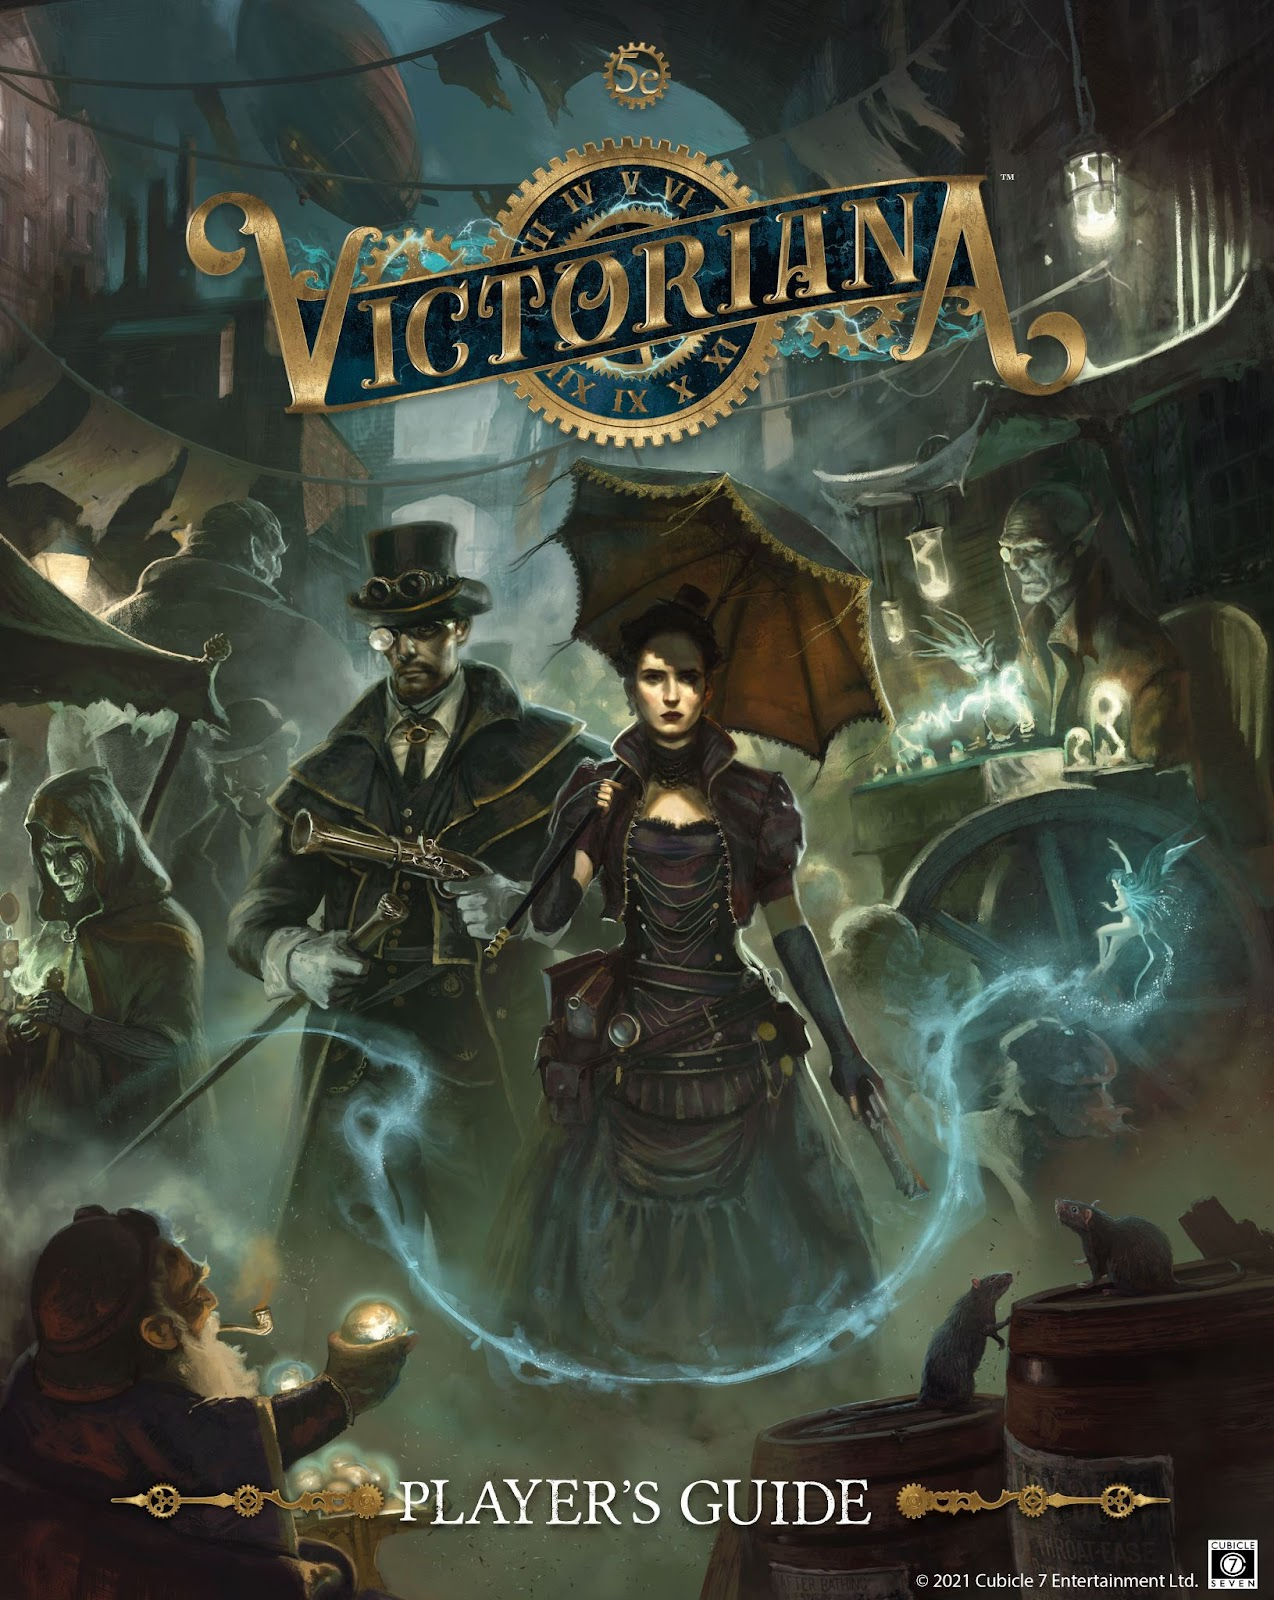 Victoriana Players Guide - Cubicle 7